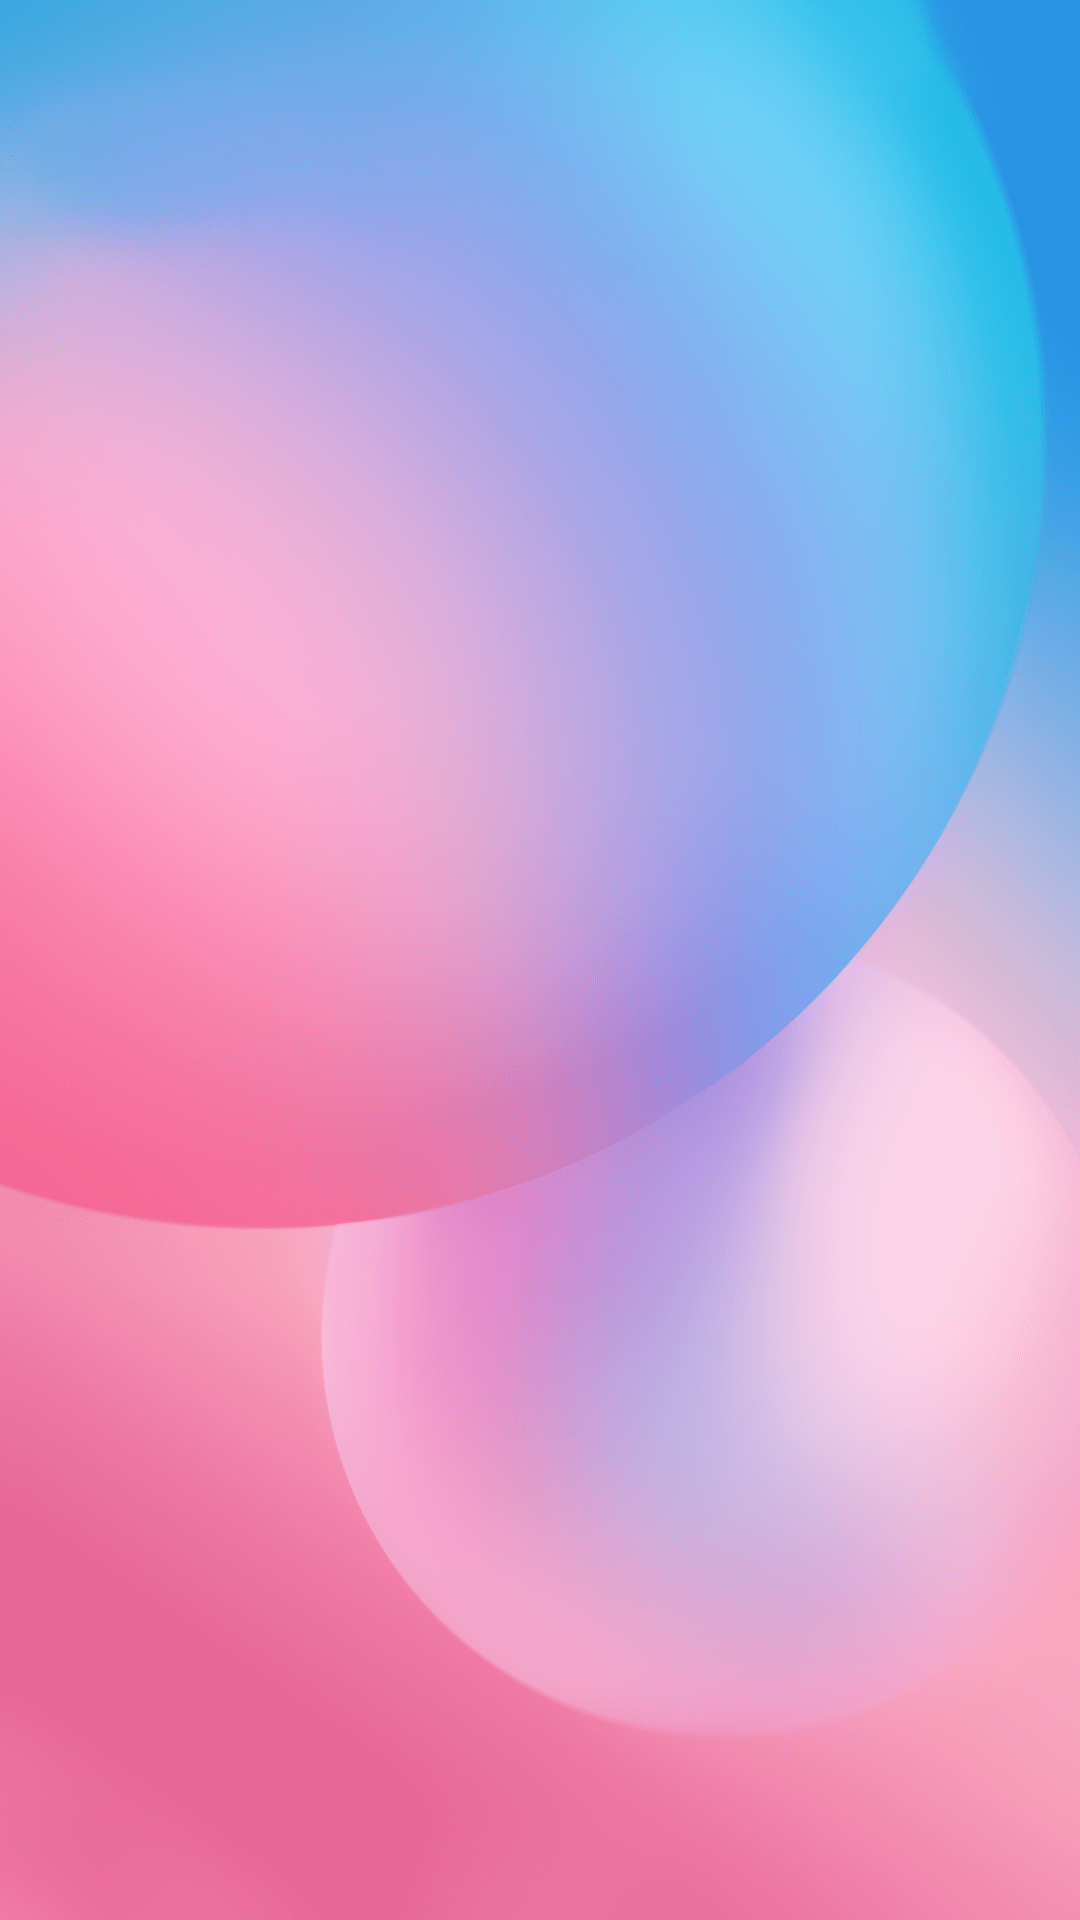 Download MIUI 9 Stock Wallpapers